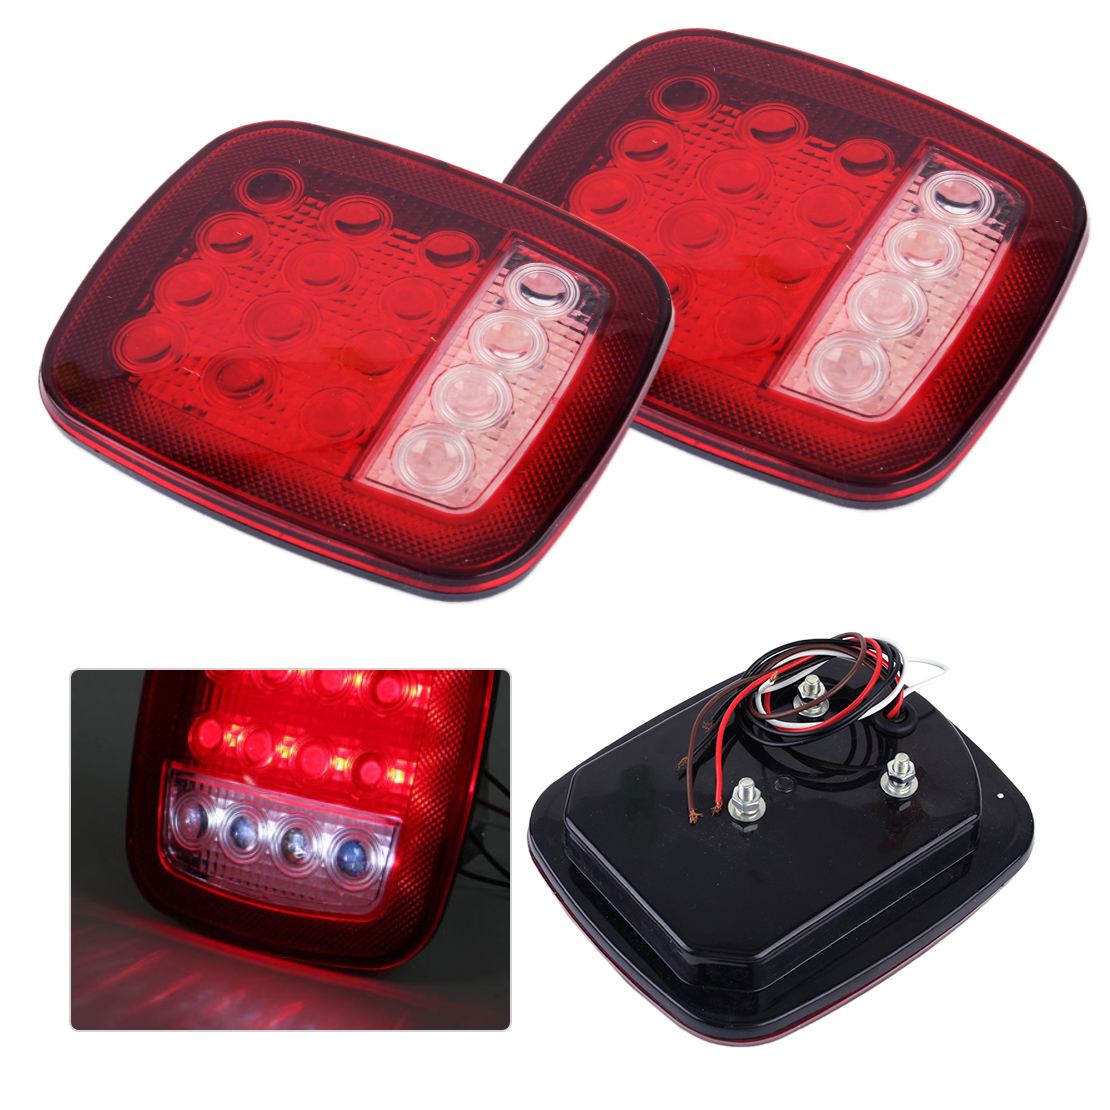 CITALL 2pcs 16 LED Red & White Car Truck Trailer Boat Stop Turn Tail Indicator Light Back Up Reverse Lamp 2pcs lot red led light 25 31mm spst 6pin on off g128 boat rocker switch 16a 250v 20a 125v car dash dashboard truck rv atv home